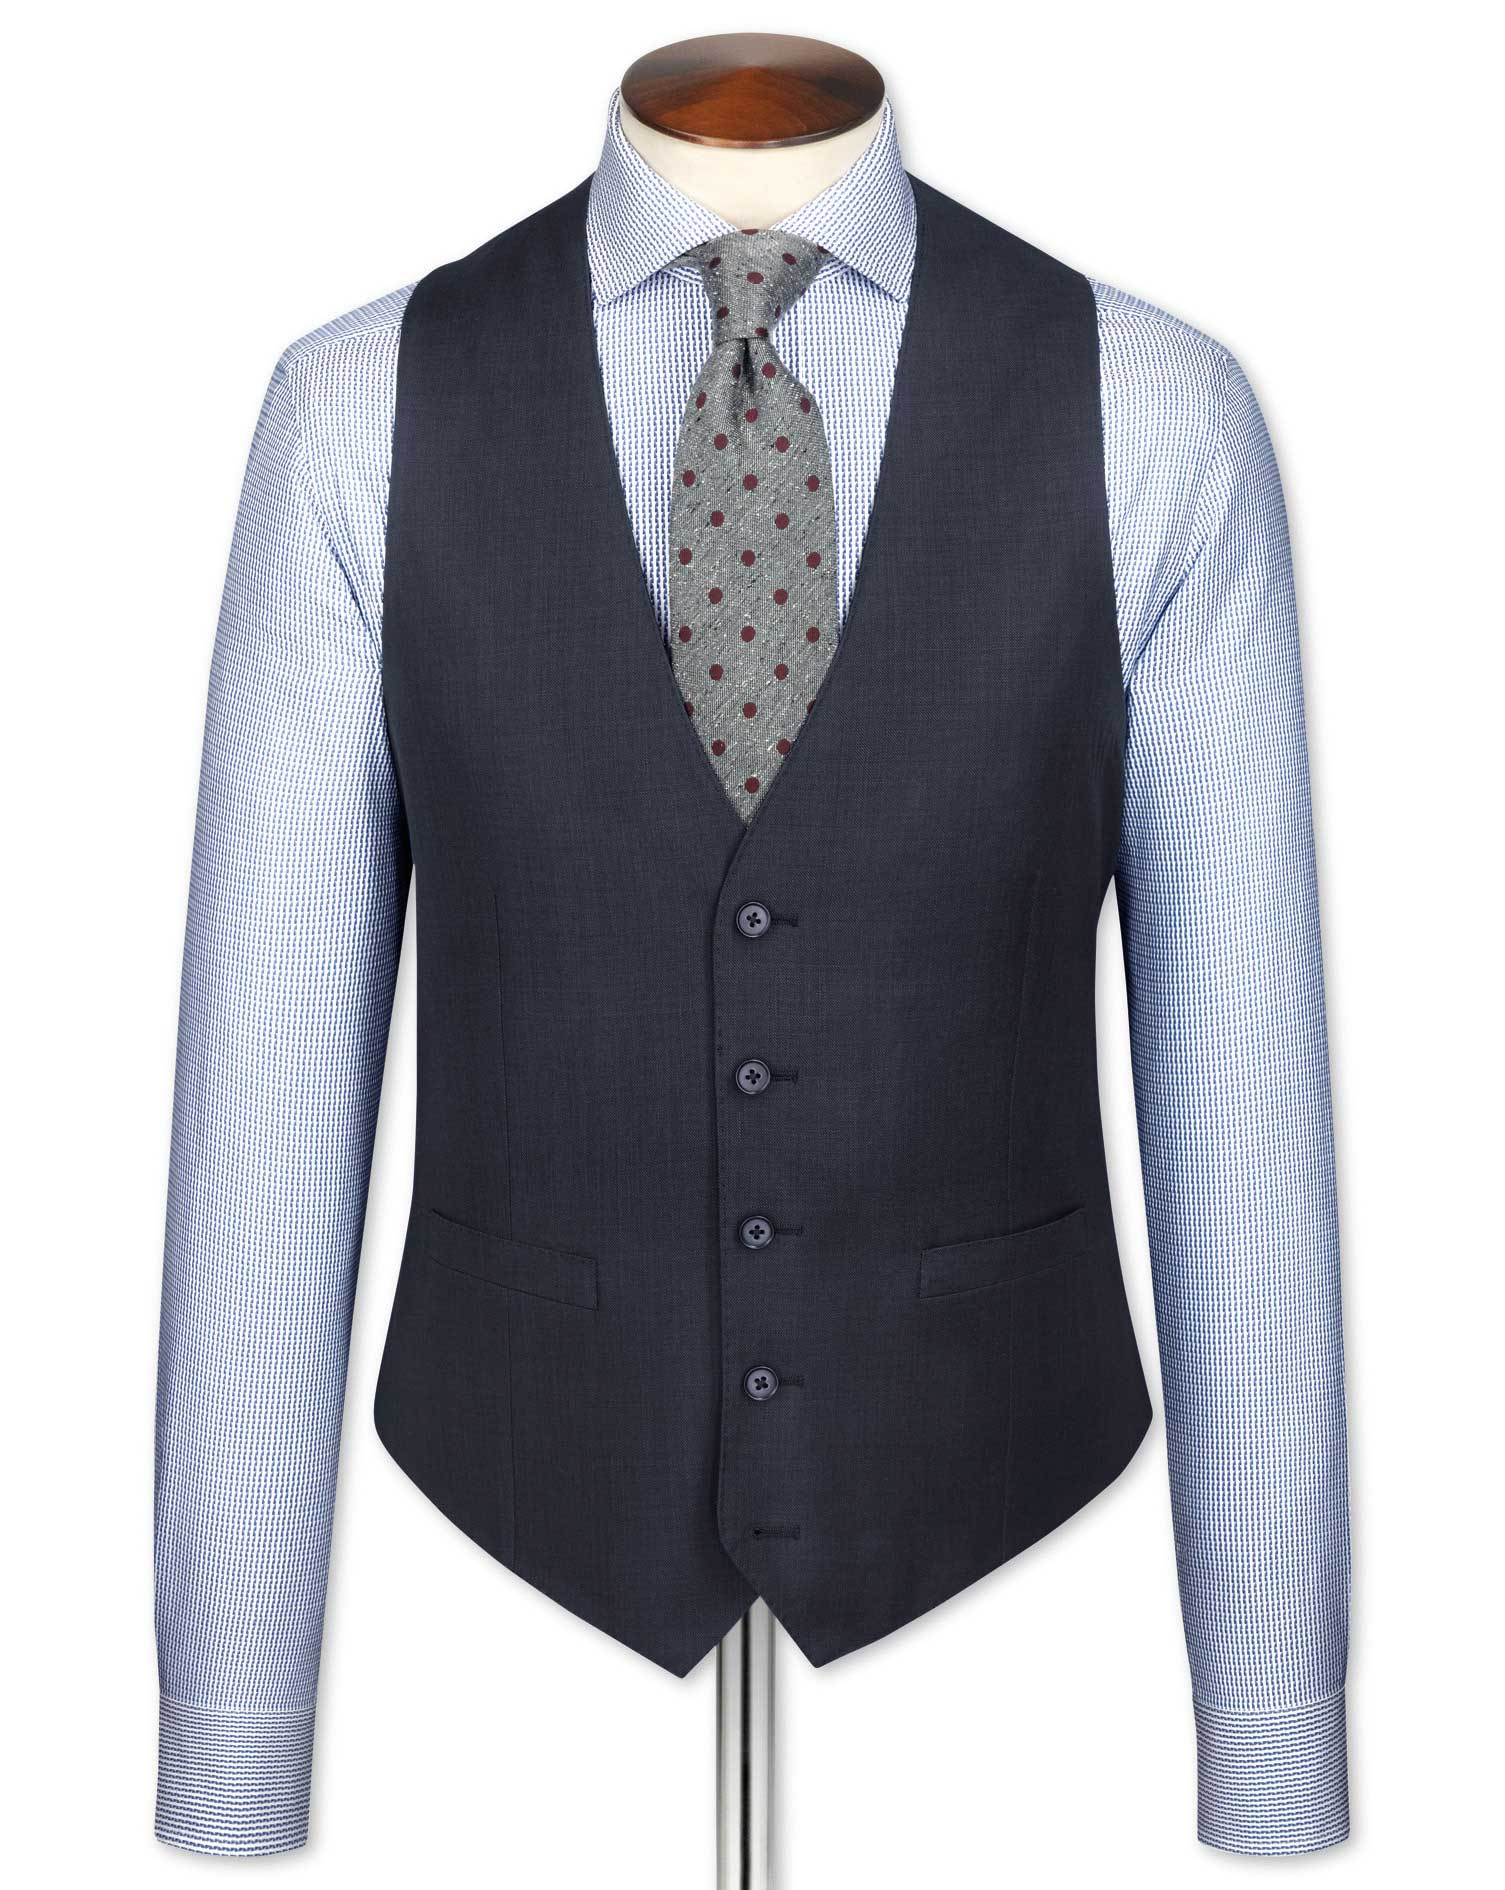 Blue slim fit sharkskin travel suit vest